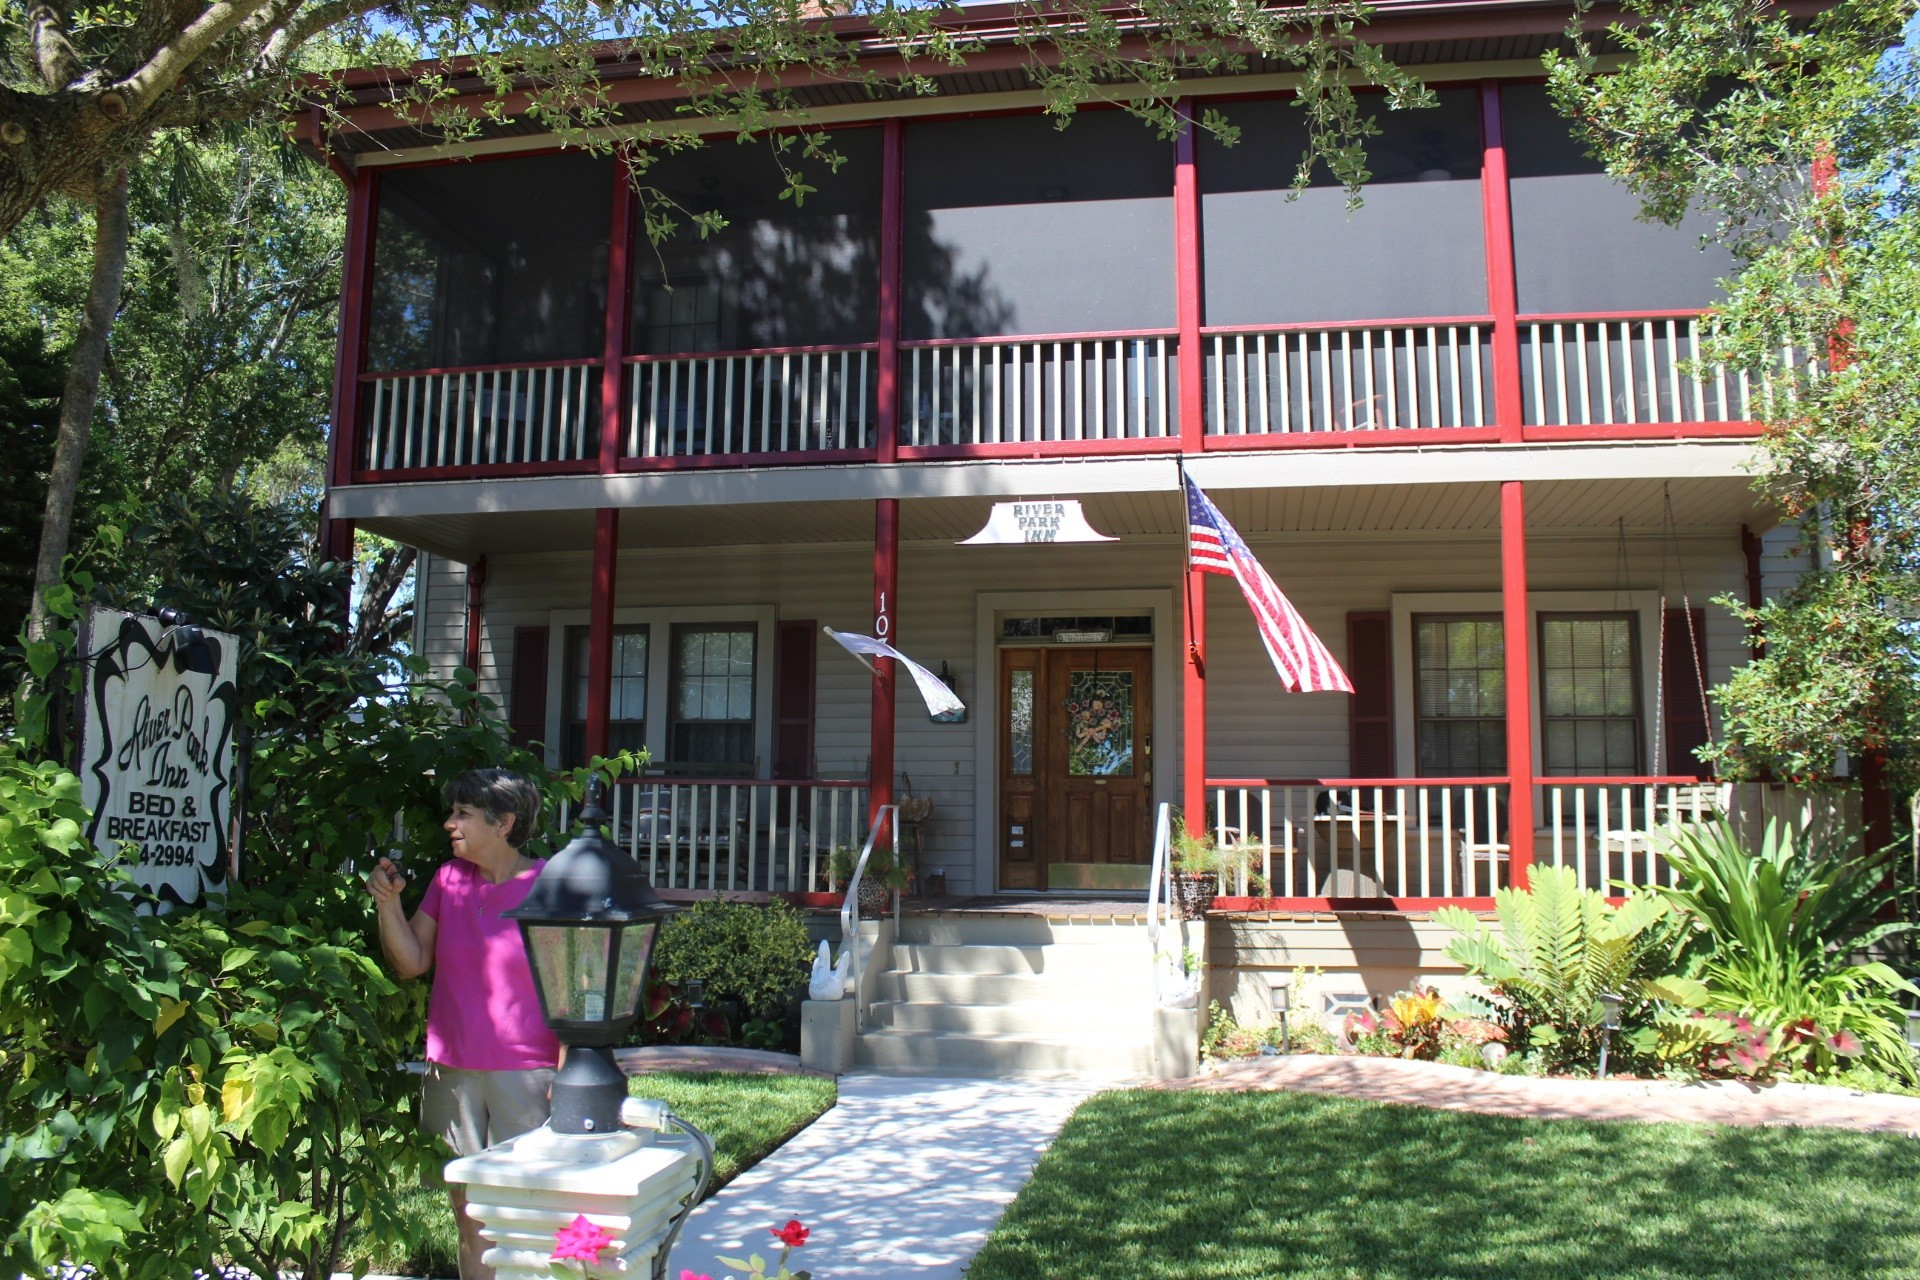 green cove springs online dating Book your tickets online for the top things to do in green cove springs, florida on tripadvisor: see 2,195 traveler reviews and photos of green cove springs tourist attractions.